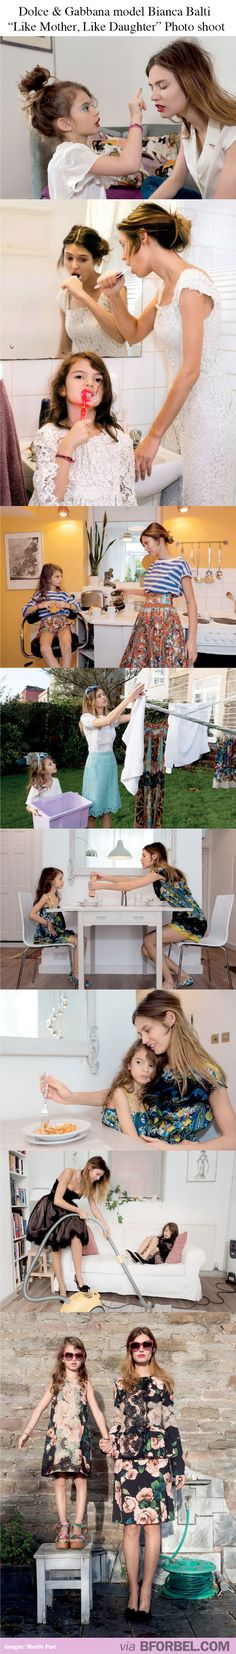 Mother and Daughter wearing the same outfits. Adorable!